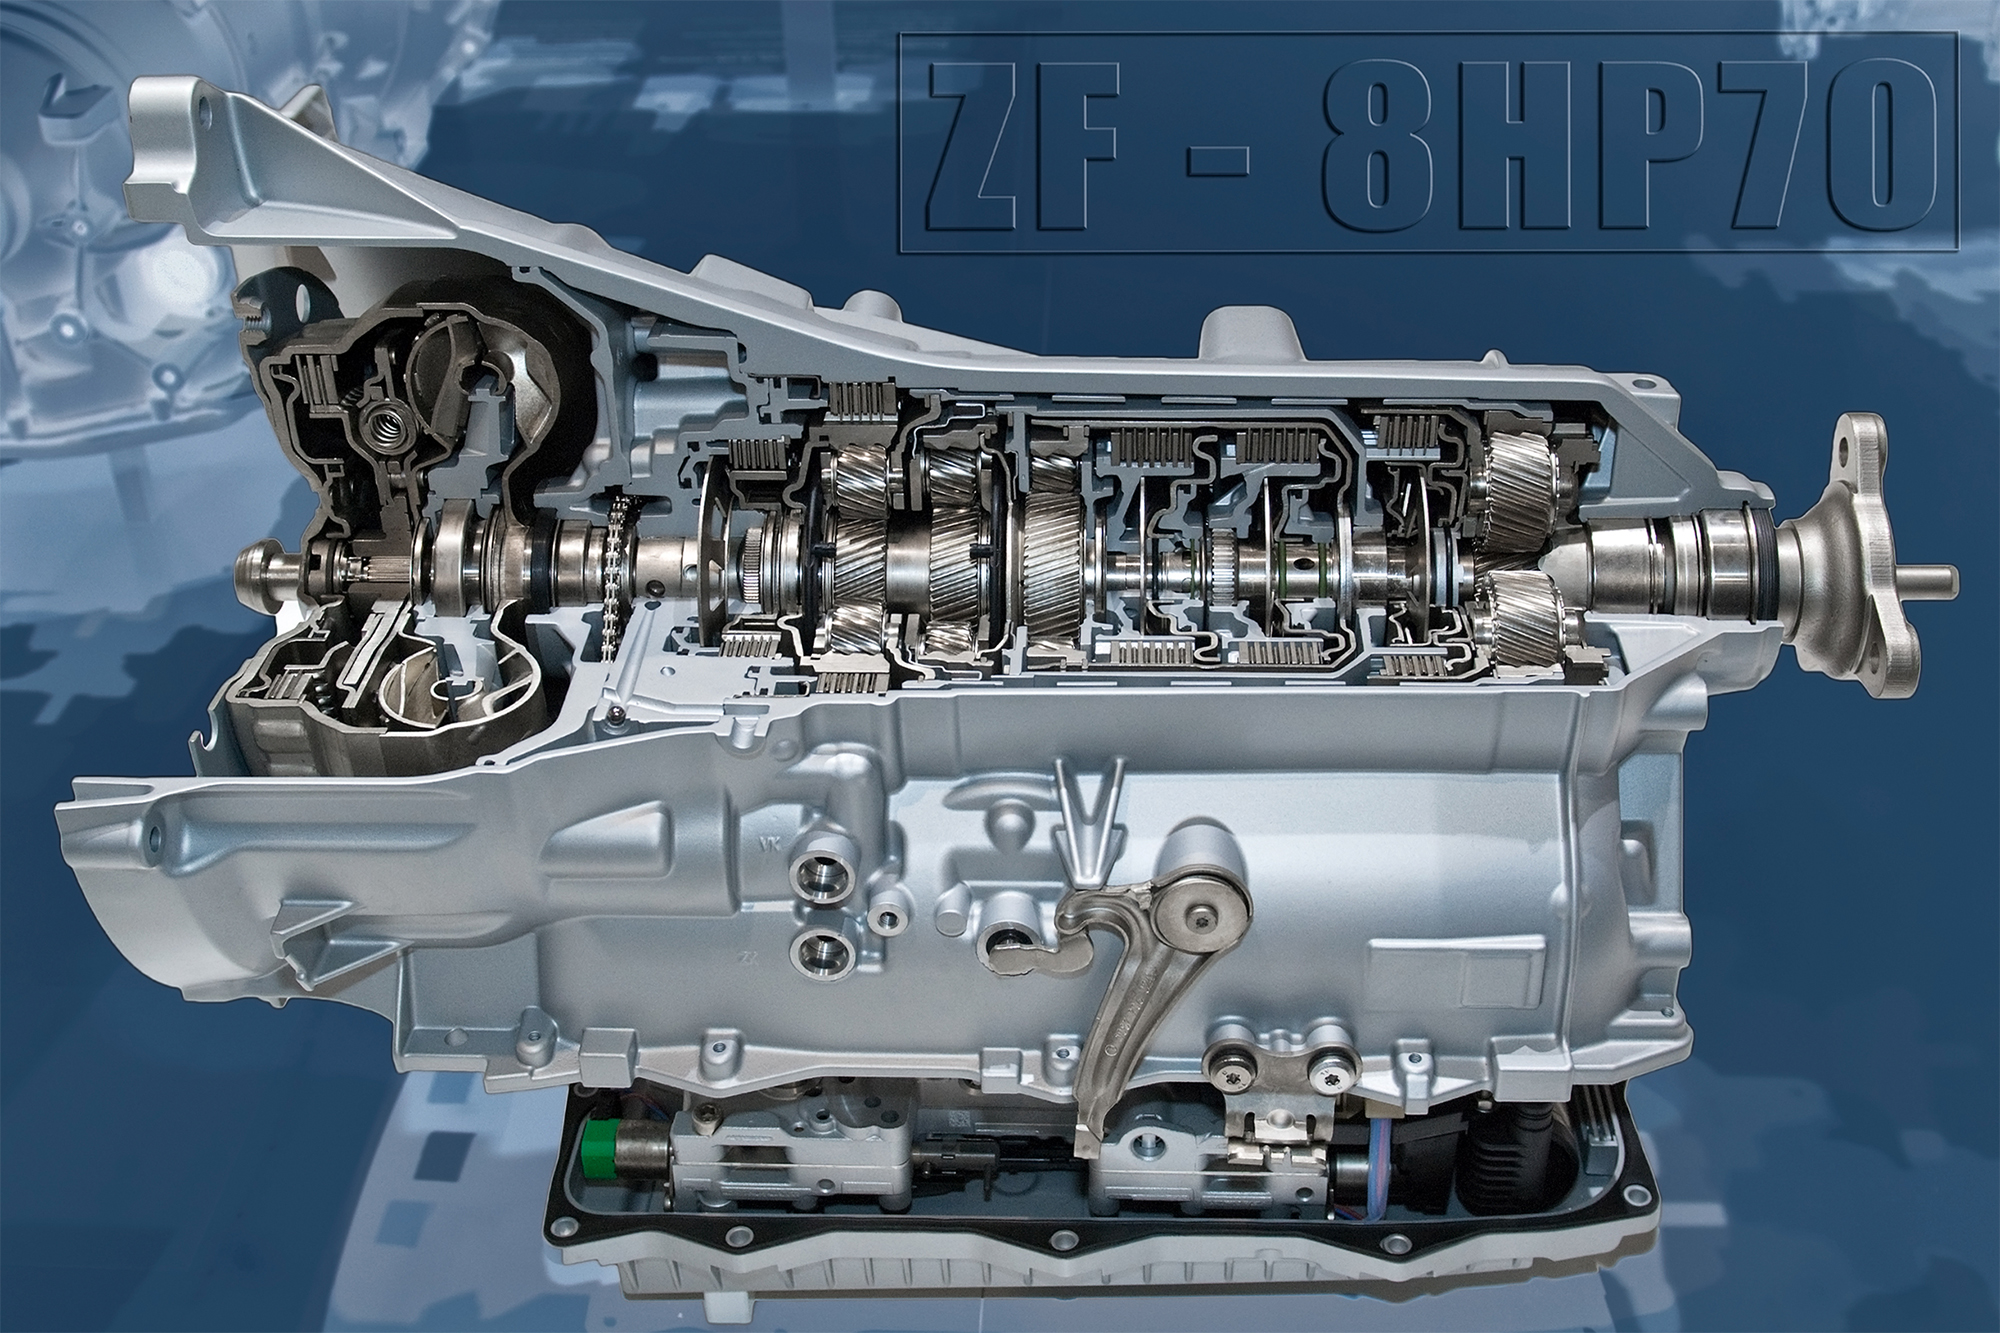 Zf 8hp Transmission Wikipedia Bmw 328i Engine Diagram